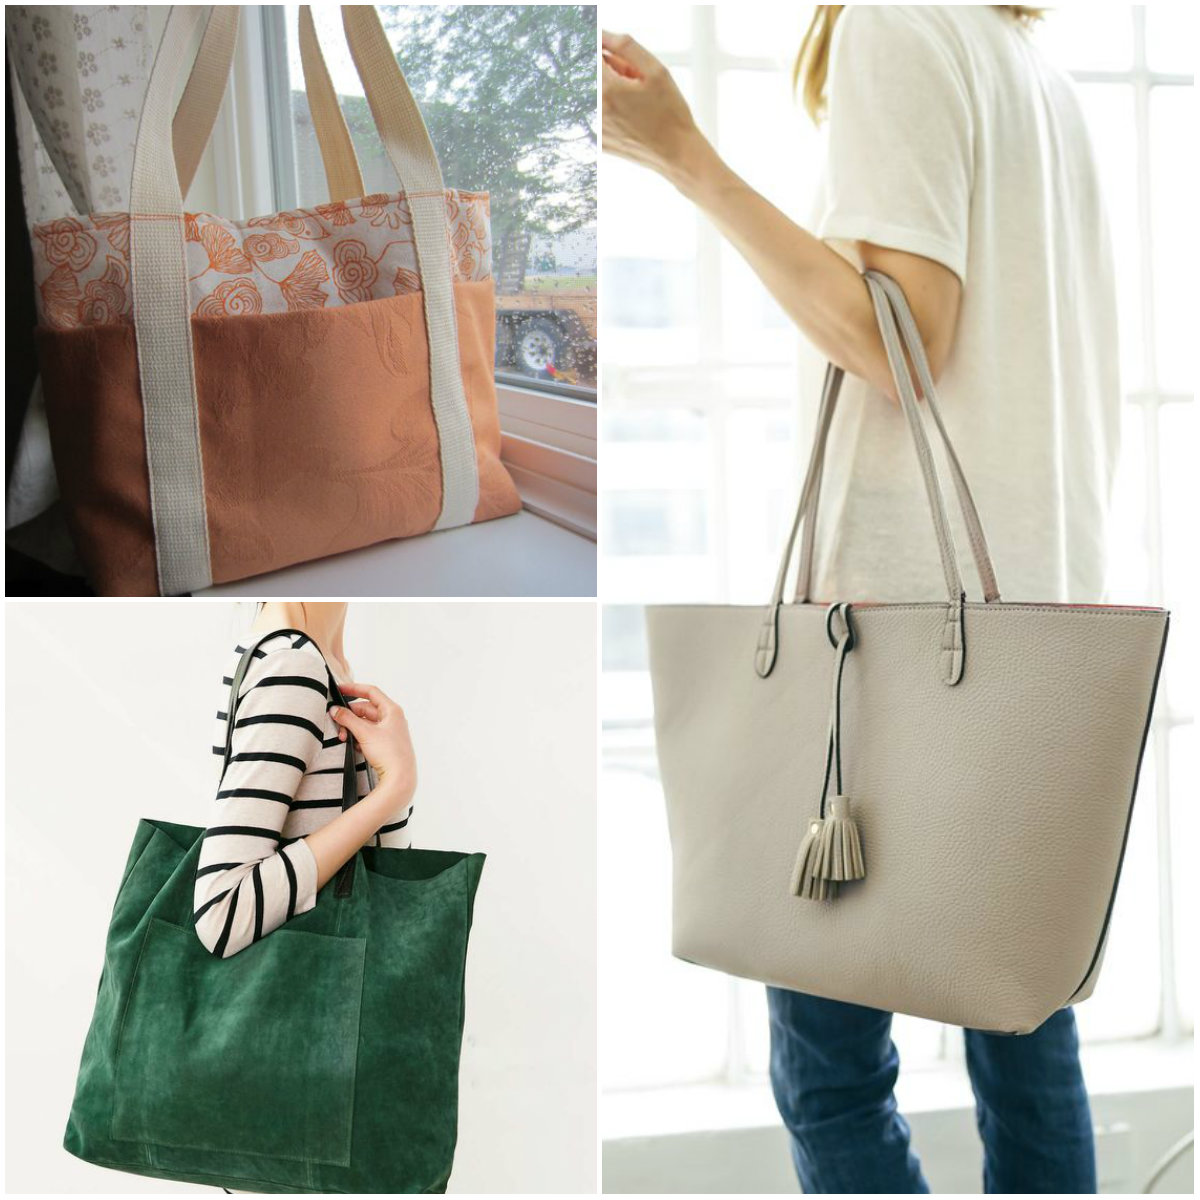 Oasis Bags: 3 types of tote bags that complement different moods